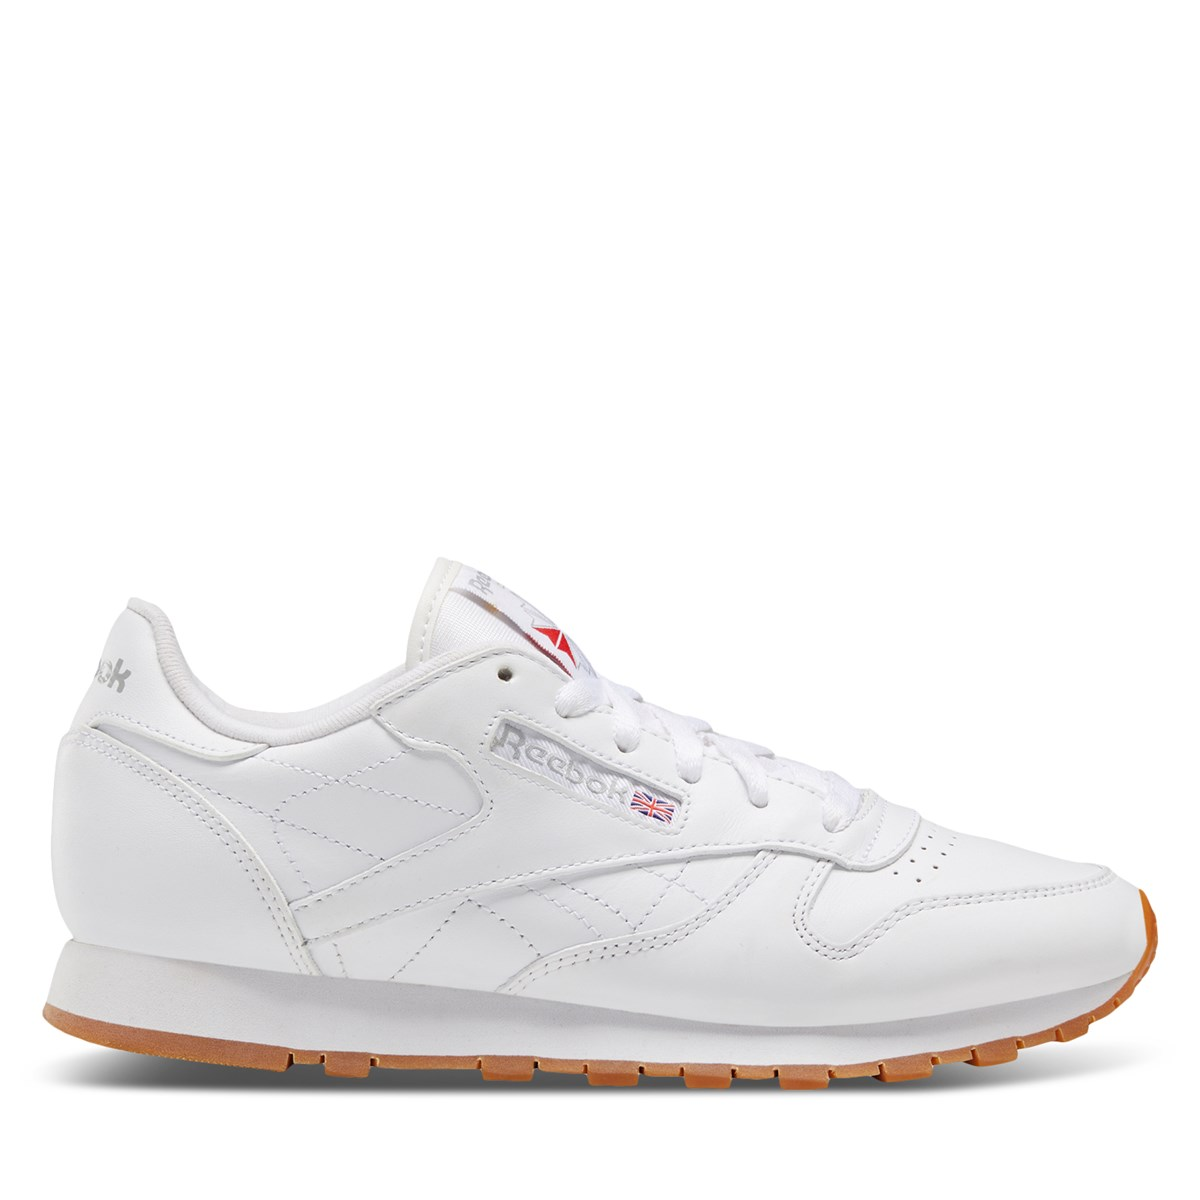 59150d8f6d875 Women s Classic Leather White Sneaker. Previous. default view ...